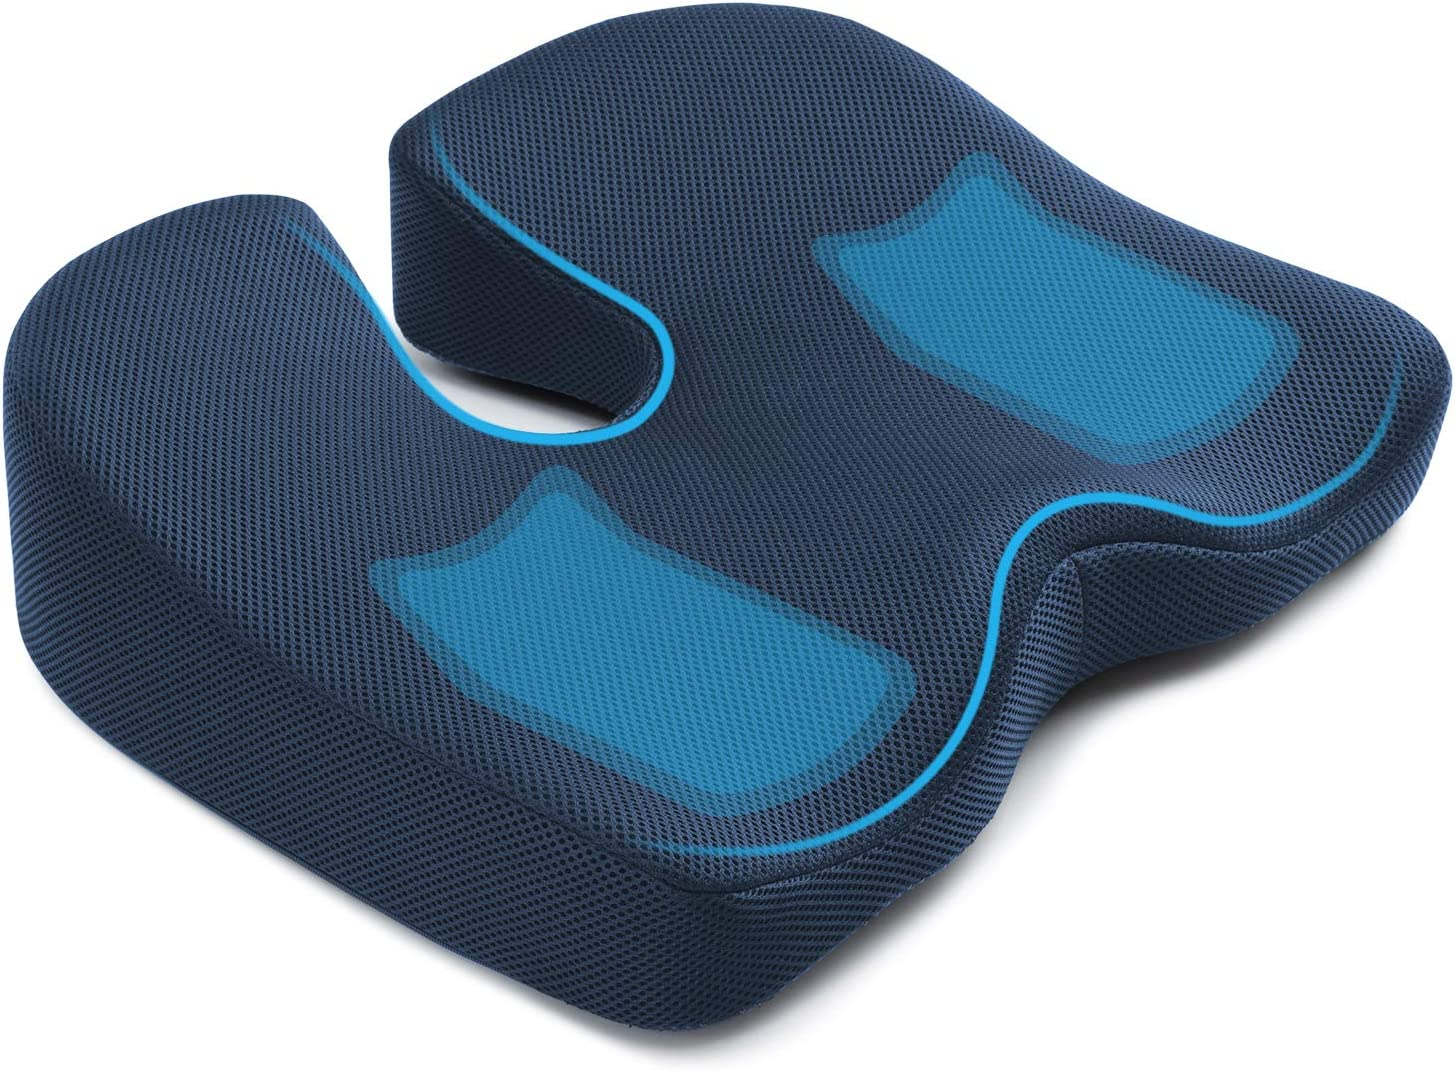 Amazon Com Seat Cushion For Office Chair Mkicesky Memory Foam Coccyx Cushion Relieve Tailbone Lower Back Hip Sciatica Pain Ergonomic Seat Pad For Car Wheelchair Desk Chair And Sitting On Floor